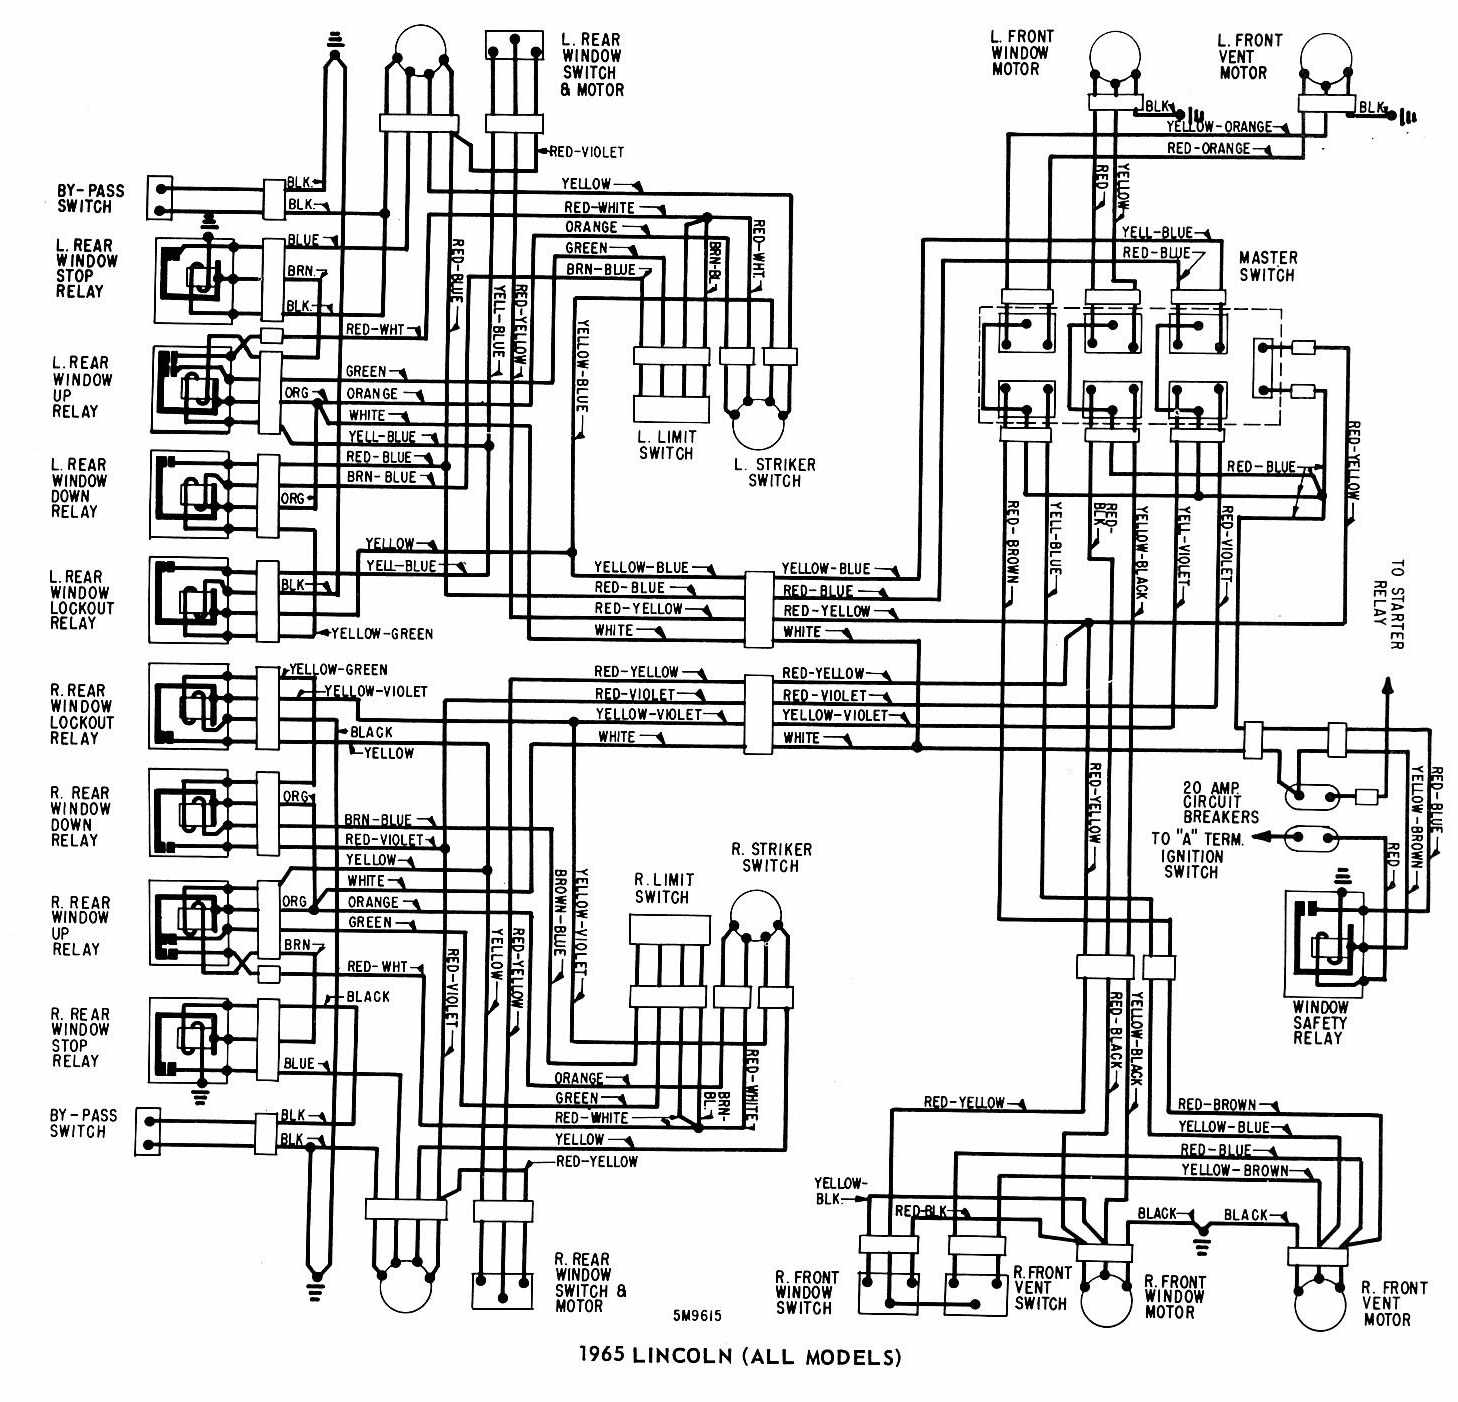 medium resolution of 1965 lincoln continental wiring diagram wiring diagram third level lincoln mark iii wiring diagram 1970 lincoln